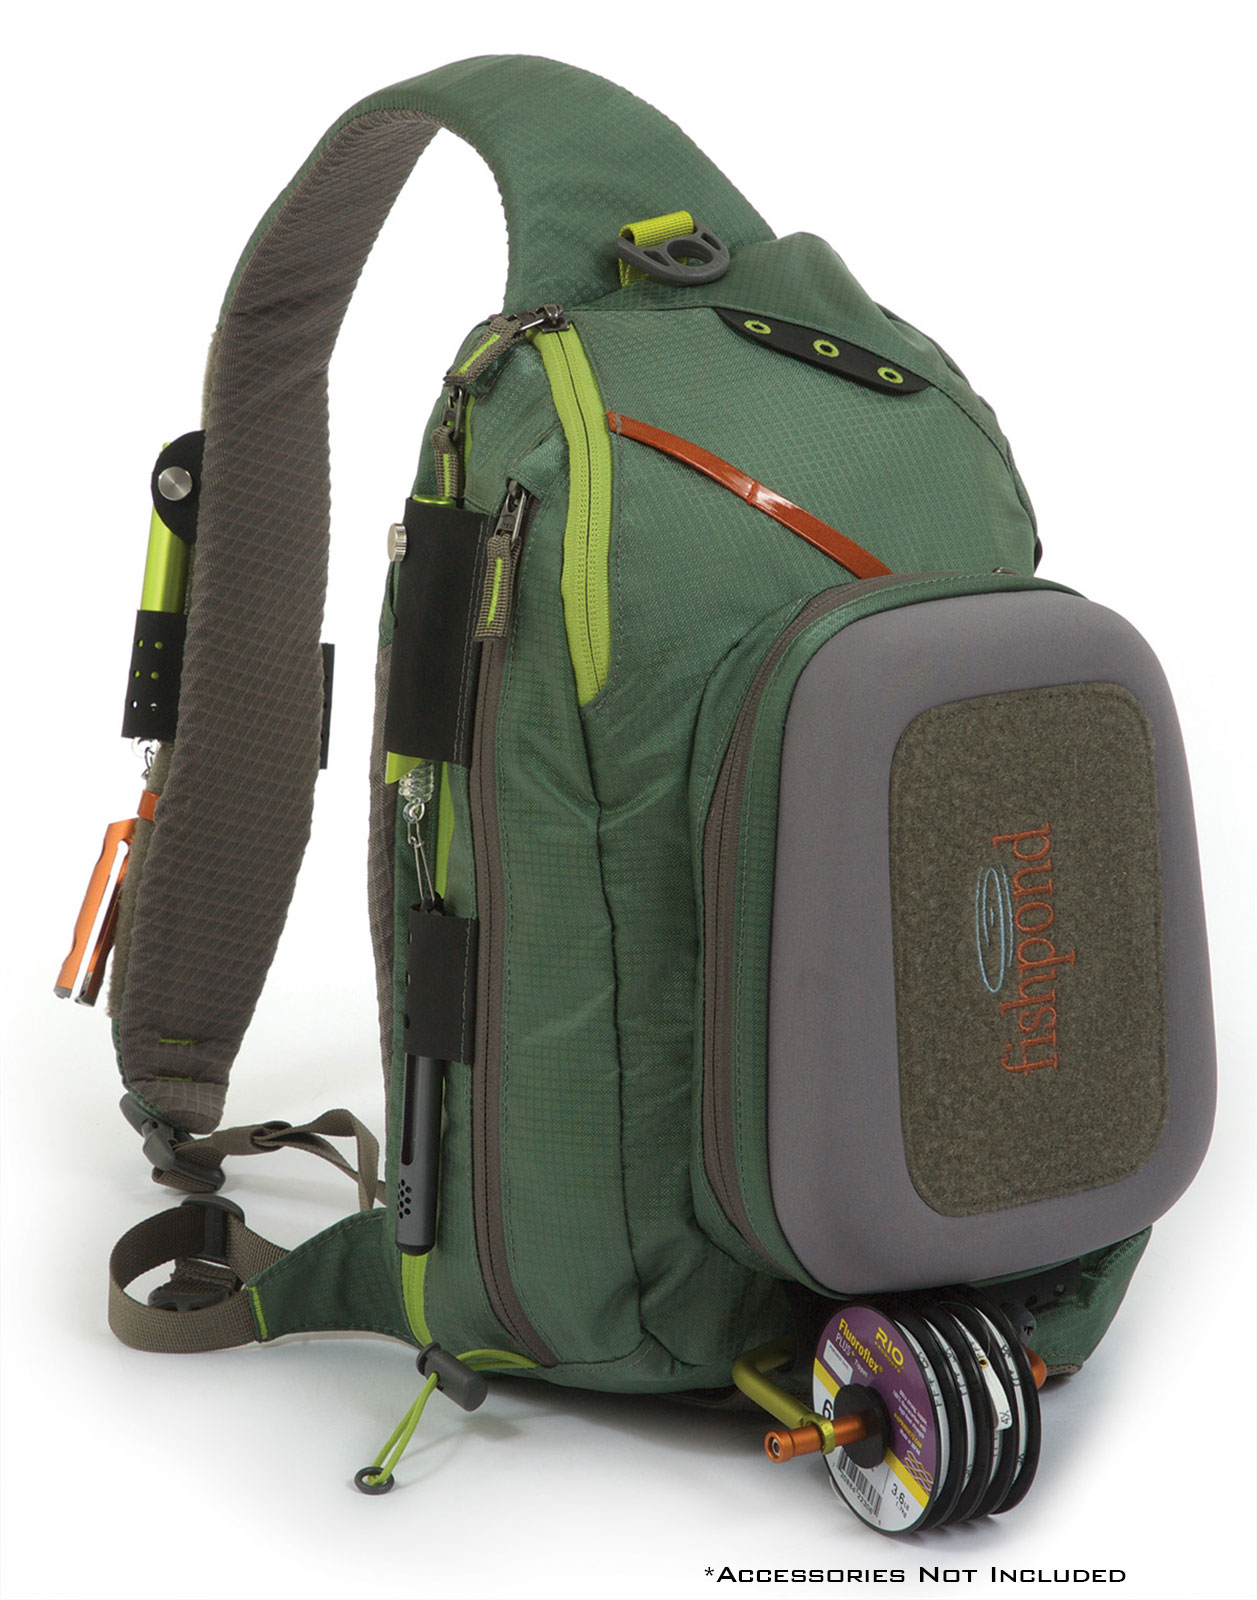 Fishpond summit sling fly fishing pack hands free gear for Fly fishing gear